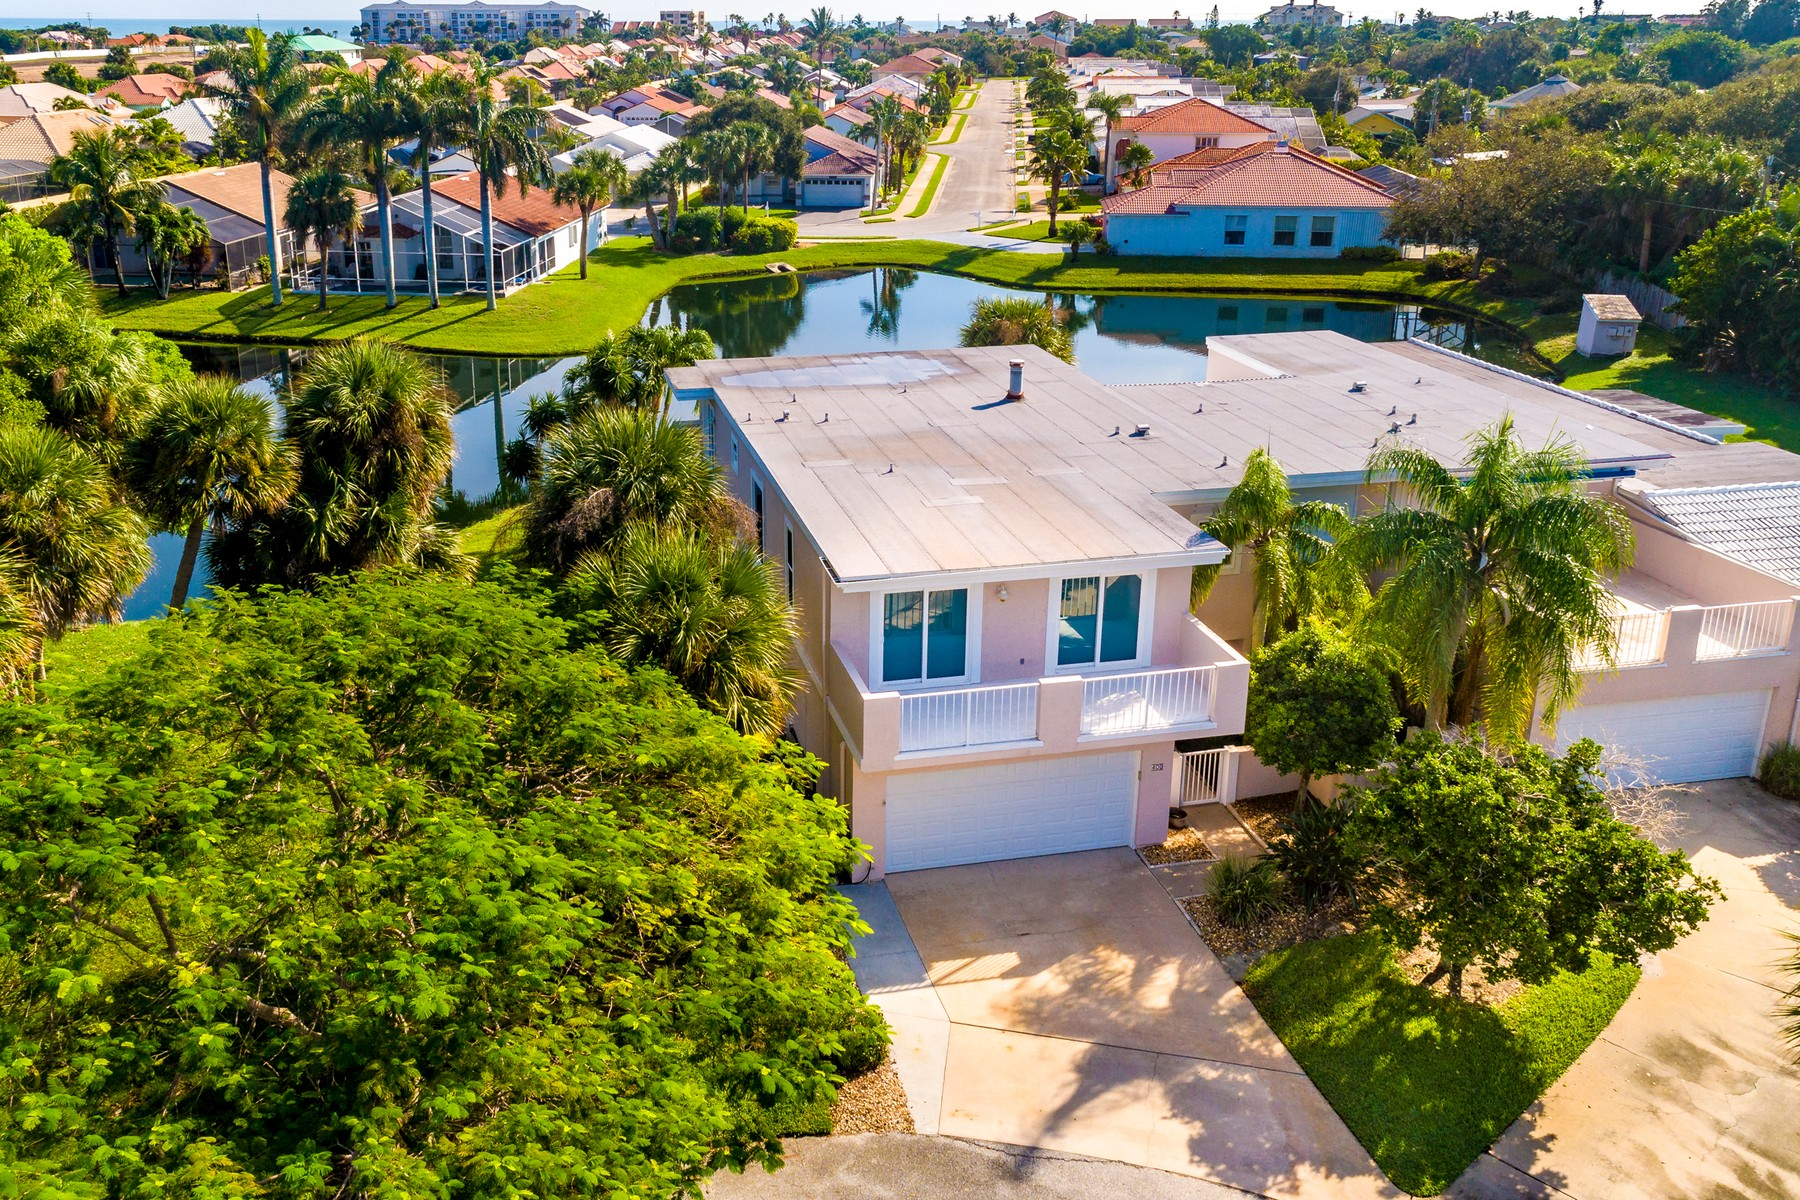 townhouses for Sale at Immaculate End Unit Town Home in Superior Melbourne Beach Location 409 La Costa Street Melbourne Beach, Florida 32951 United States